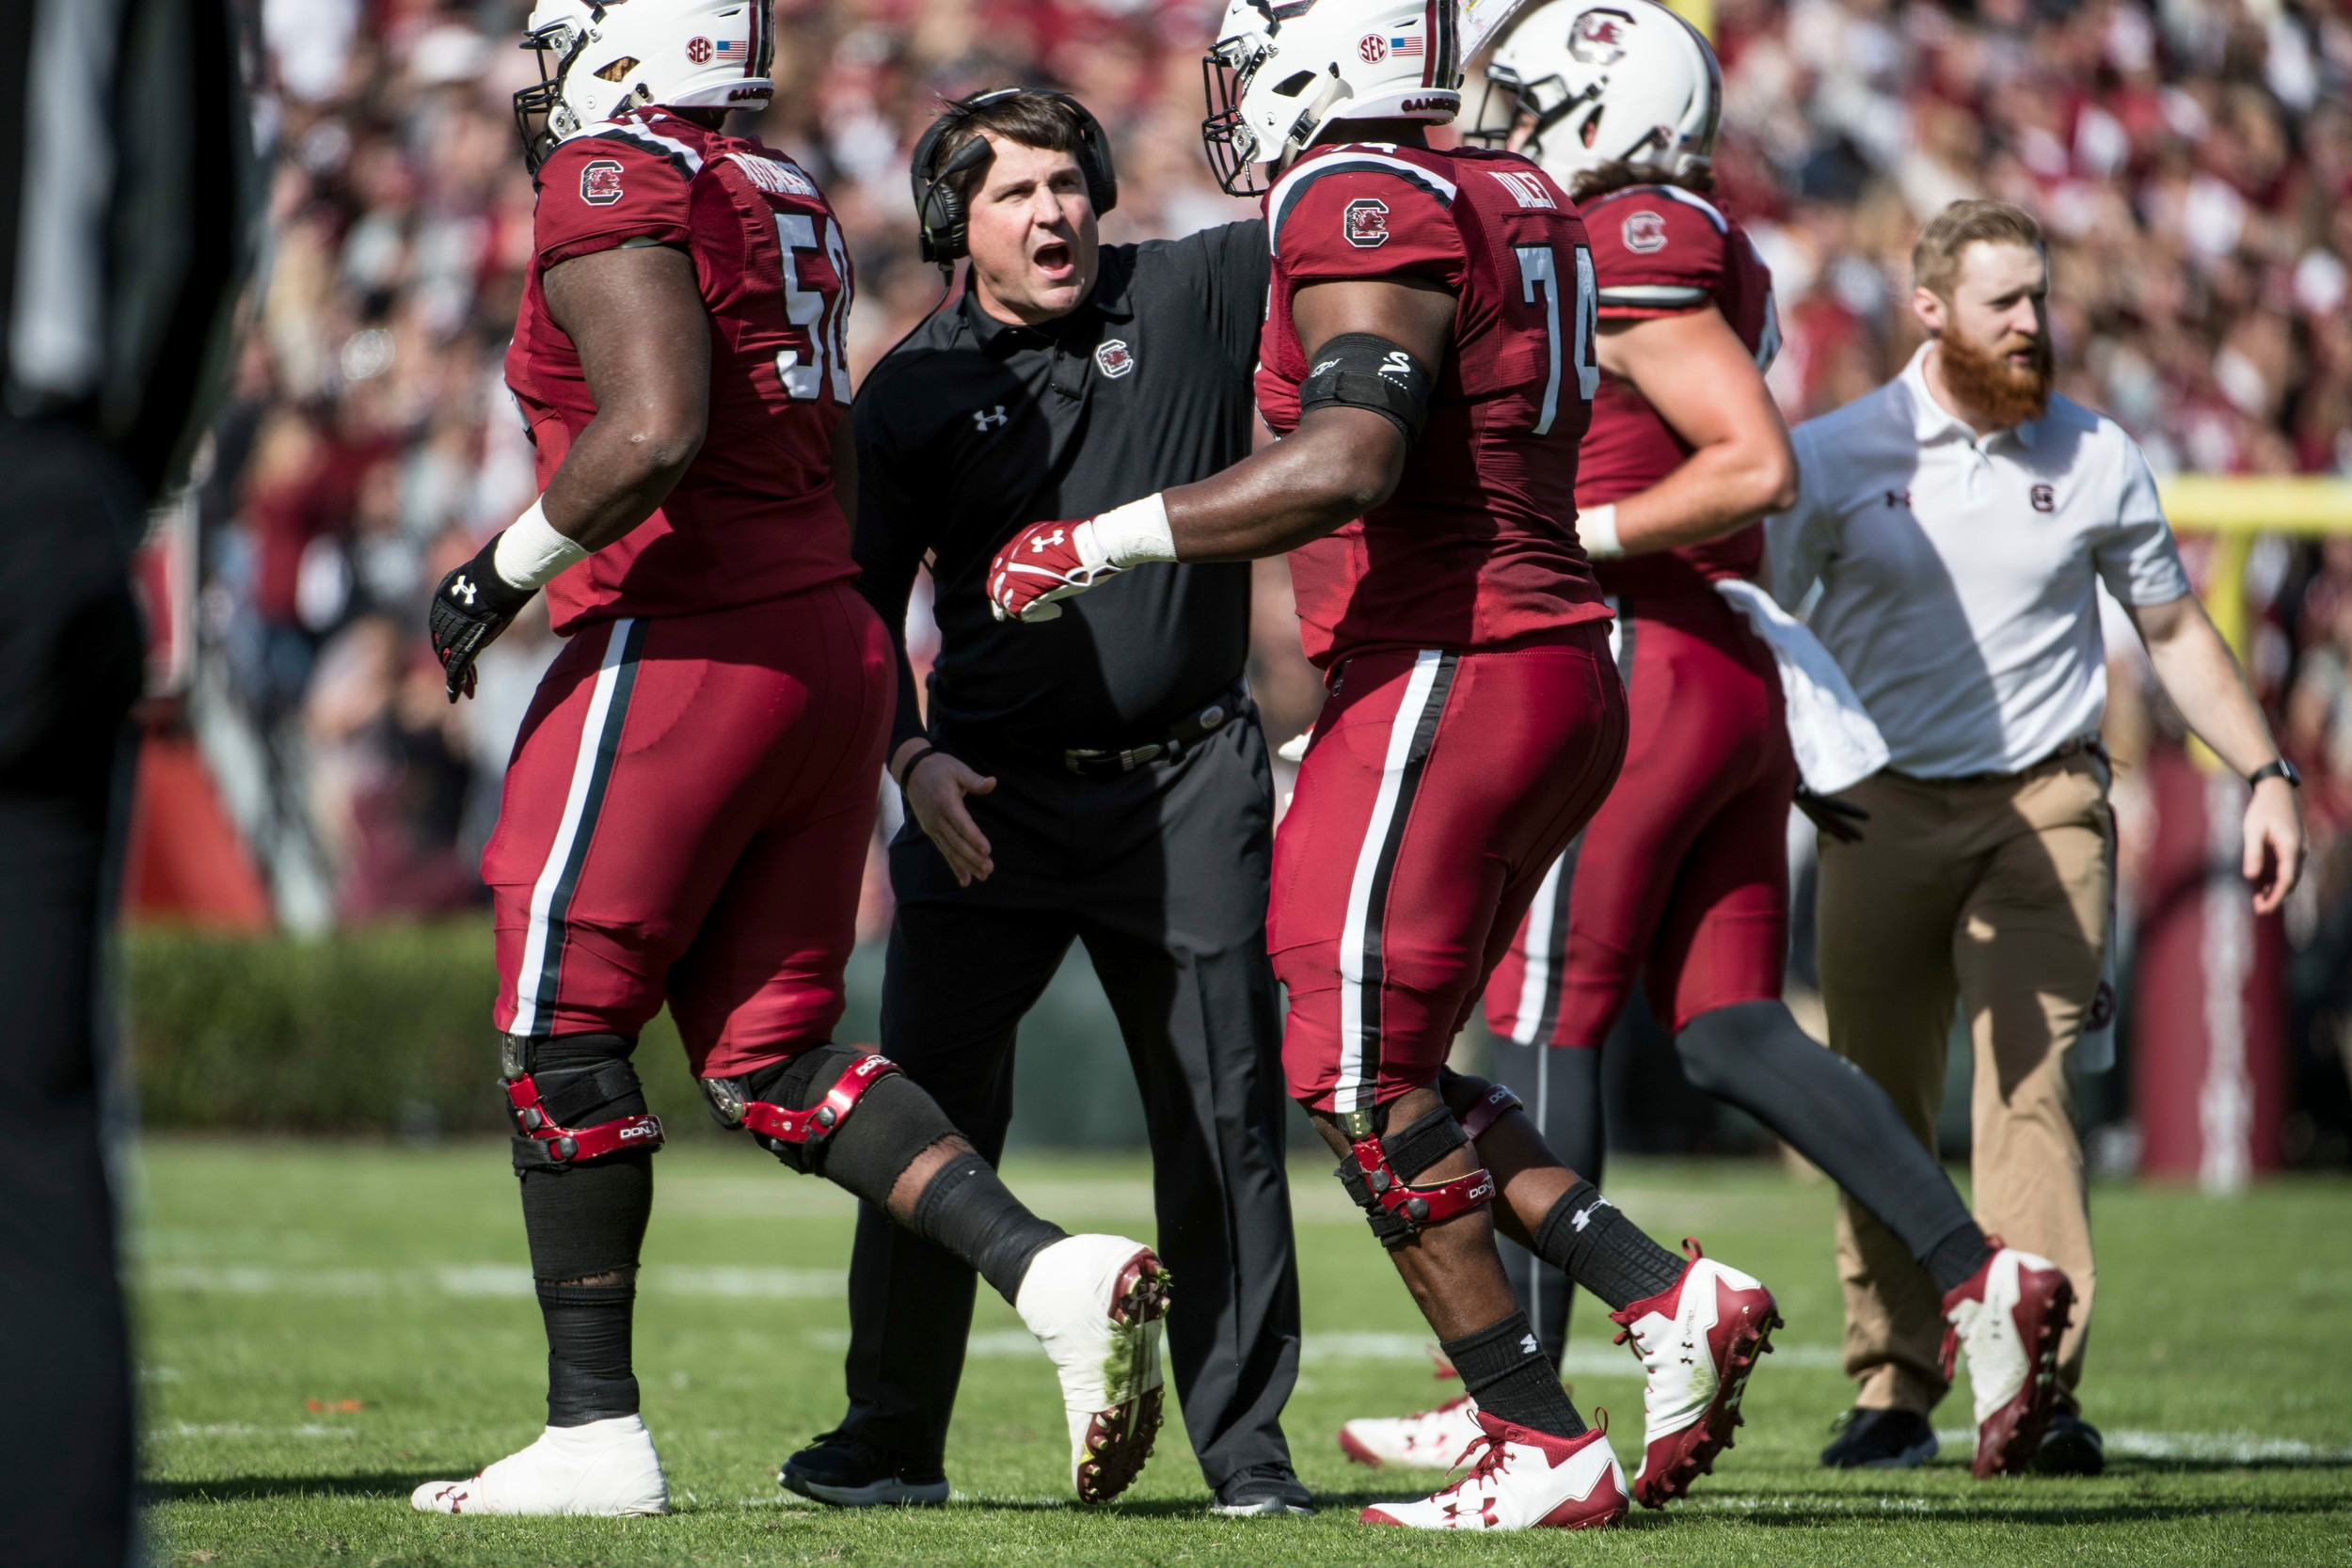 South Carolina football head coach Will Muschamp talks to his players during the Gamecocks' 28-20 victory over Florida last week. USC plays host to Wofford today.